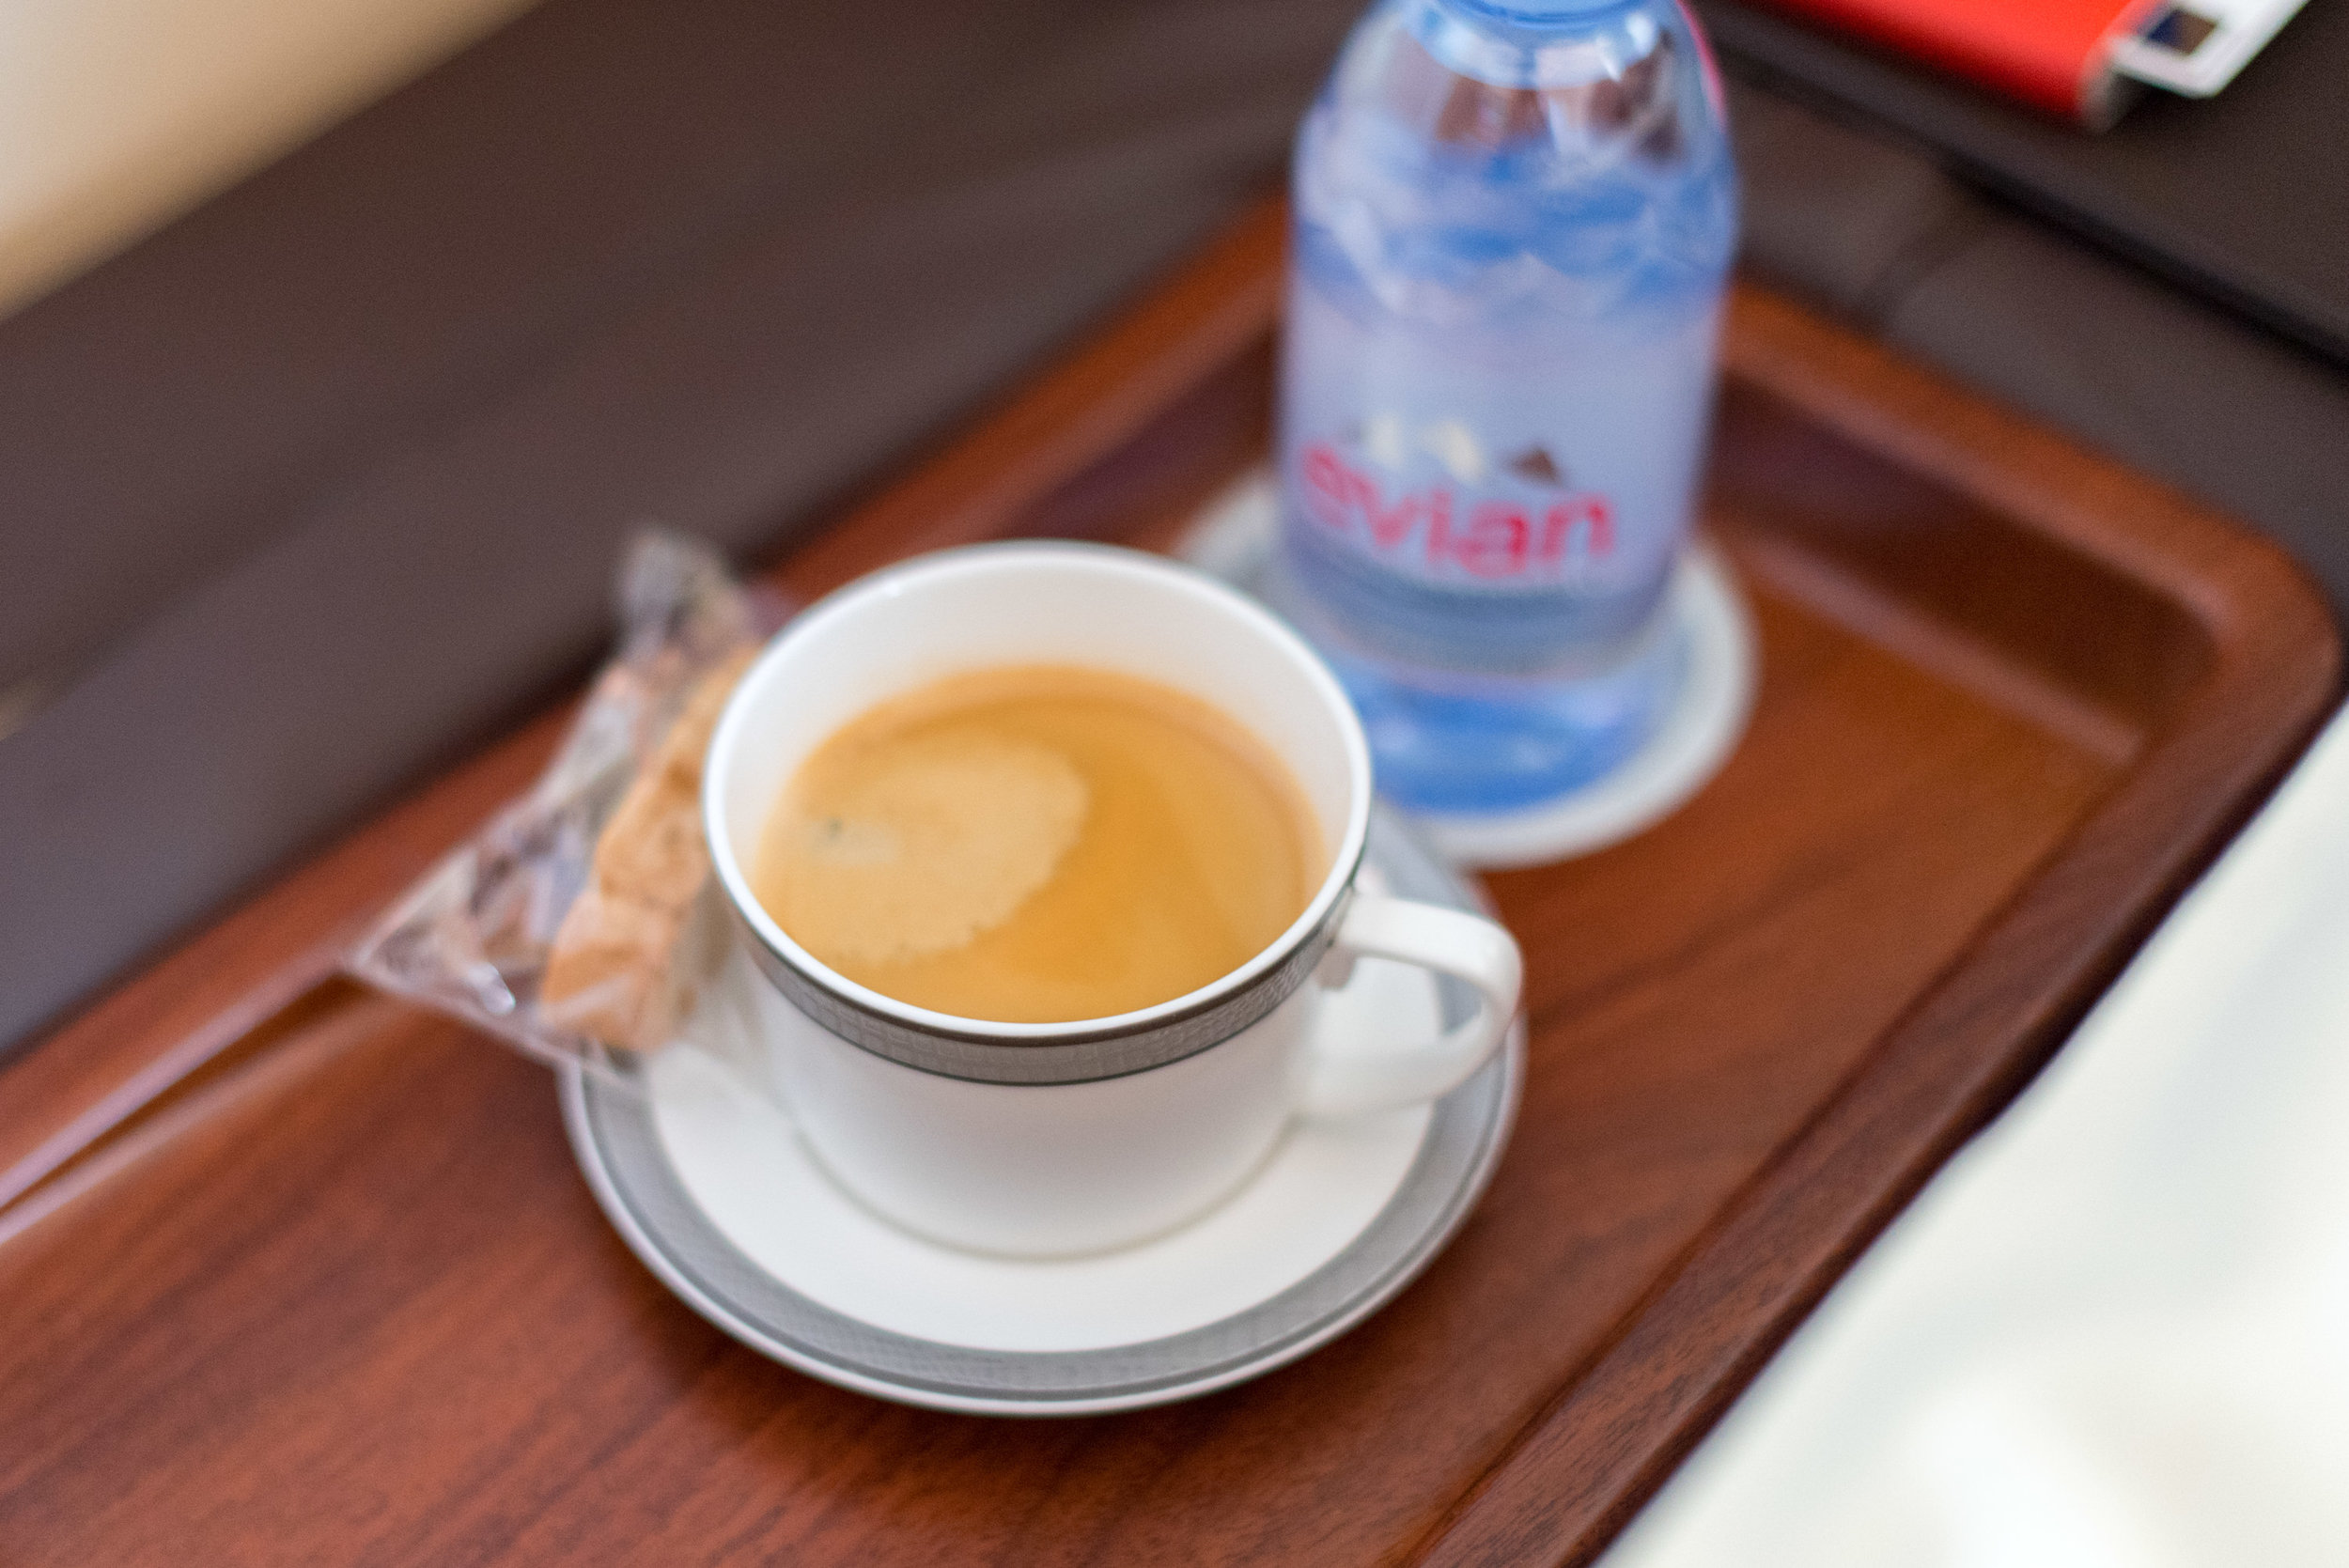 Blue Mountain Coffee and Evian  Singapore Airlines Suites SQ802 A380-800 - SIN to PEK